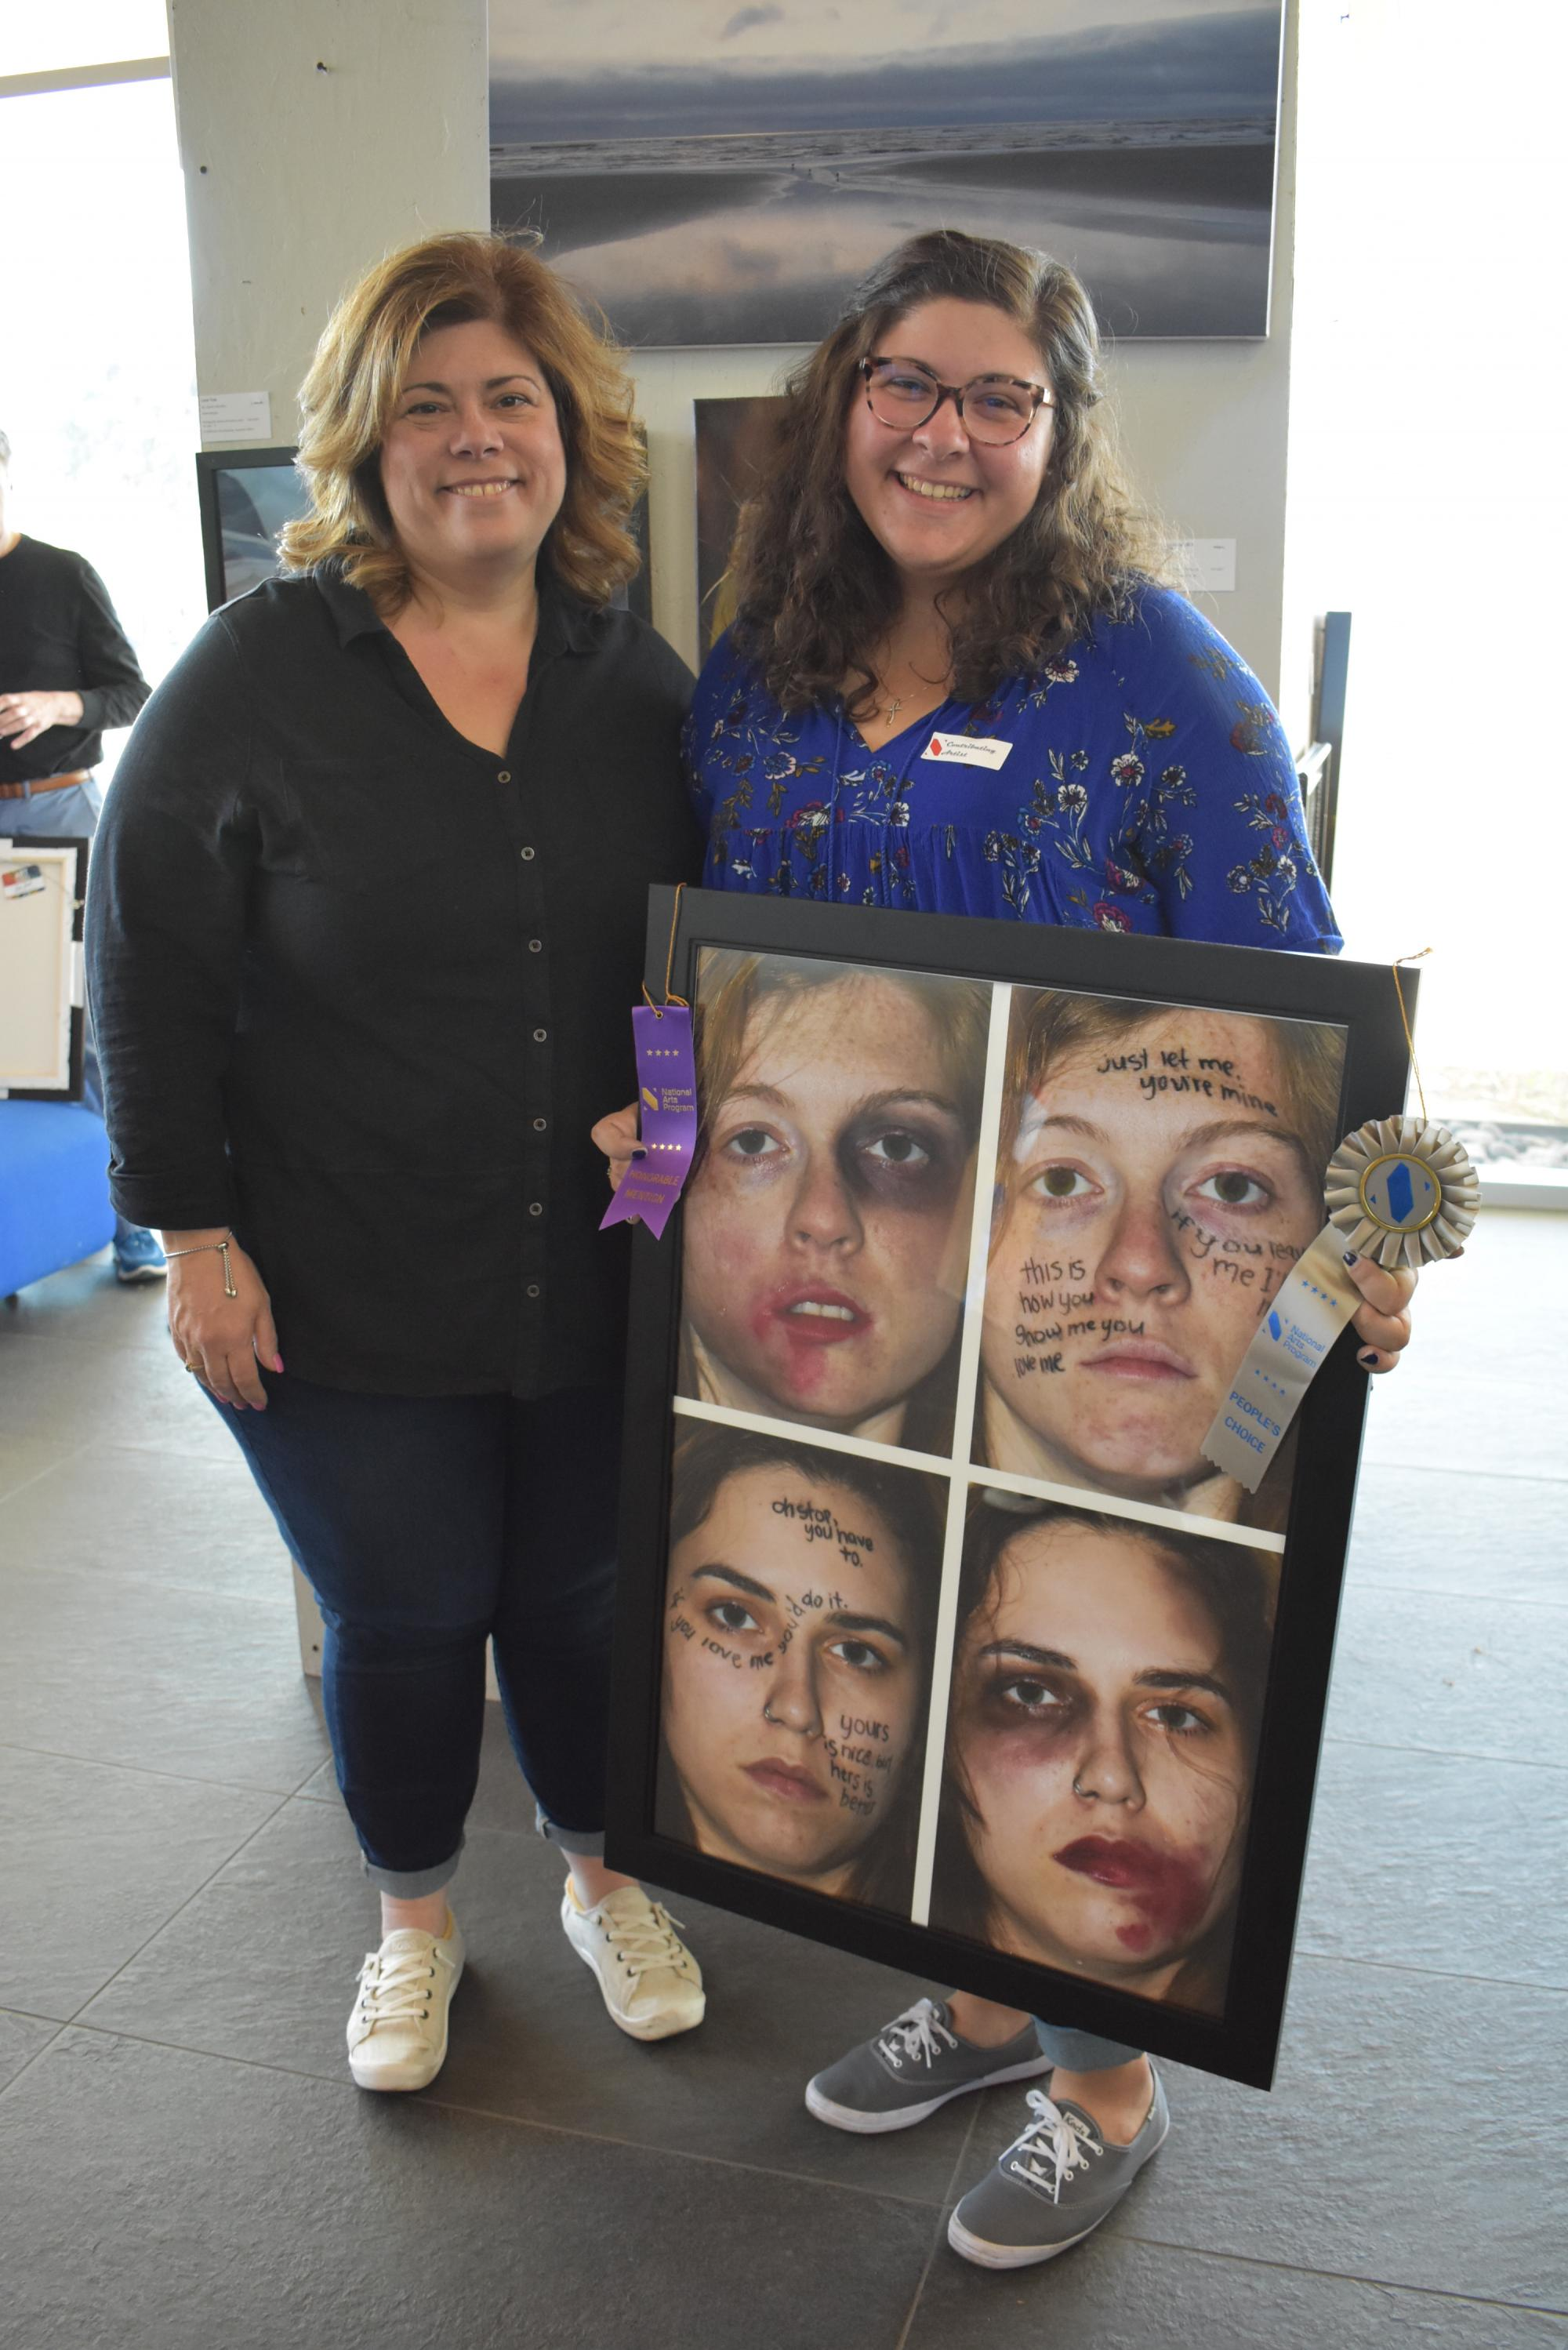 "Hailey Koellisch, right, family of Valerie Koellisch, left, an accountant in the Department of Family and Community Medicine. Hailey Koellisch's photo collage, ""Bruises Heal, Words Scar the Soul,"" won a People's Choice Award."